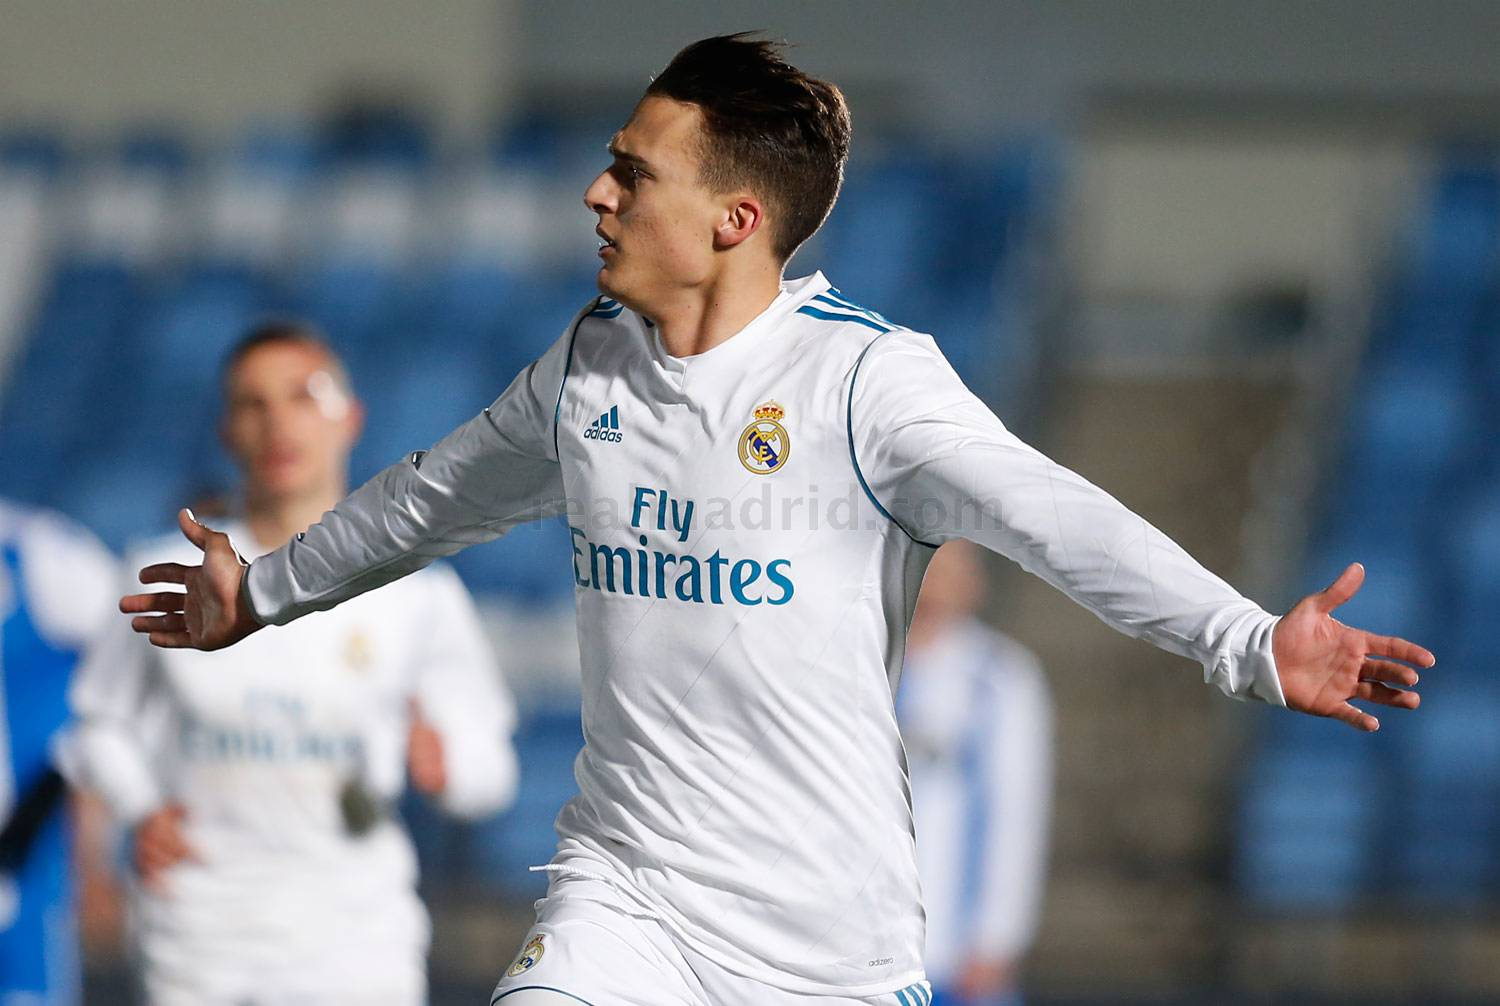 Real Madrid - Real Madrid Castilla - Deportivo Fabril - 28-01-2018